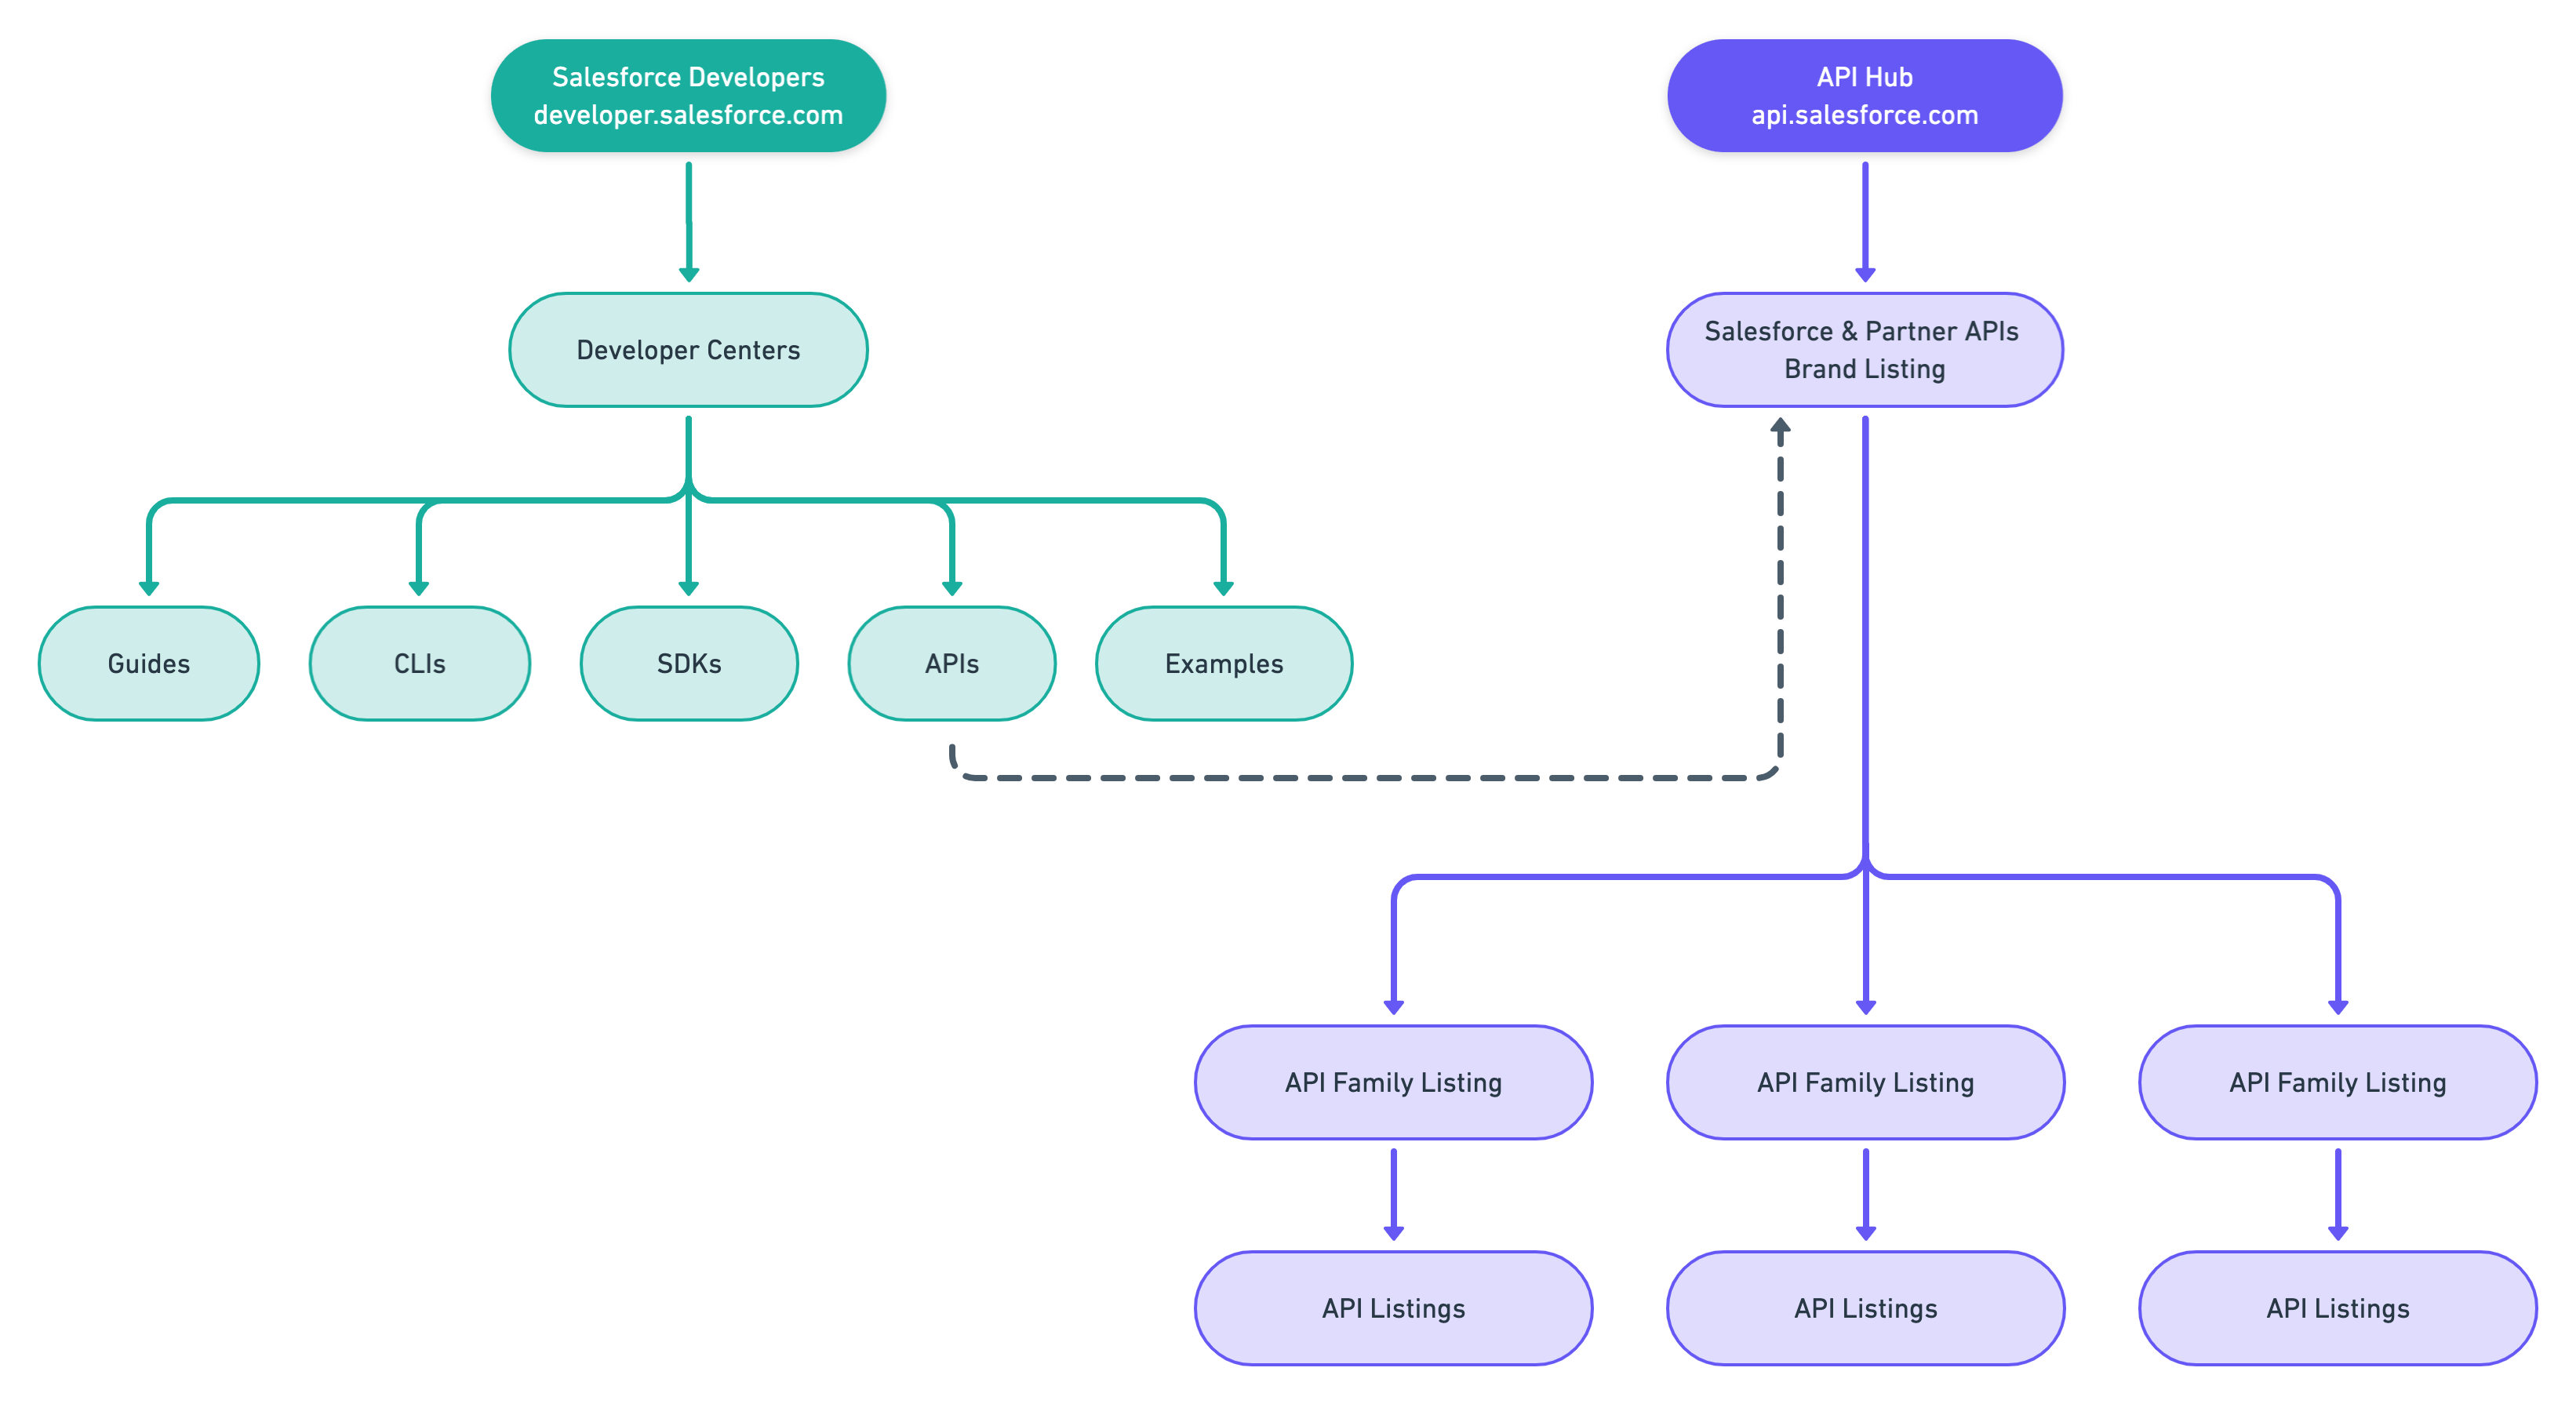 Information Architecture representing the division between API Hub and the Developer Website